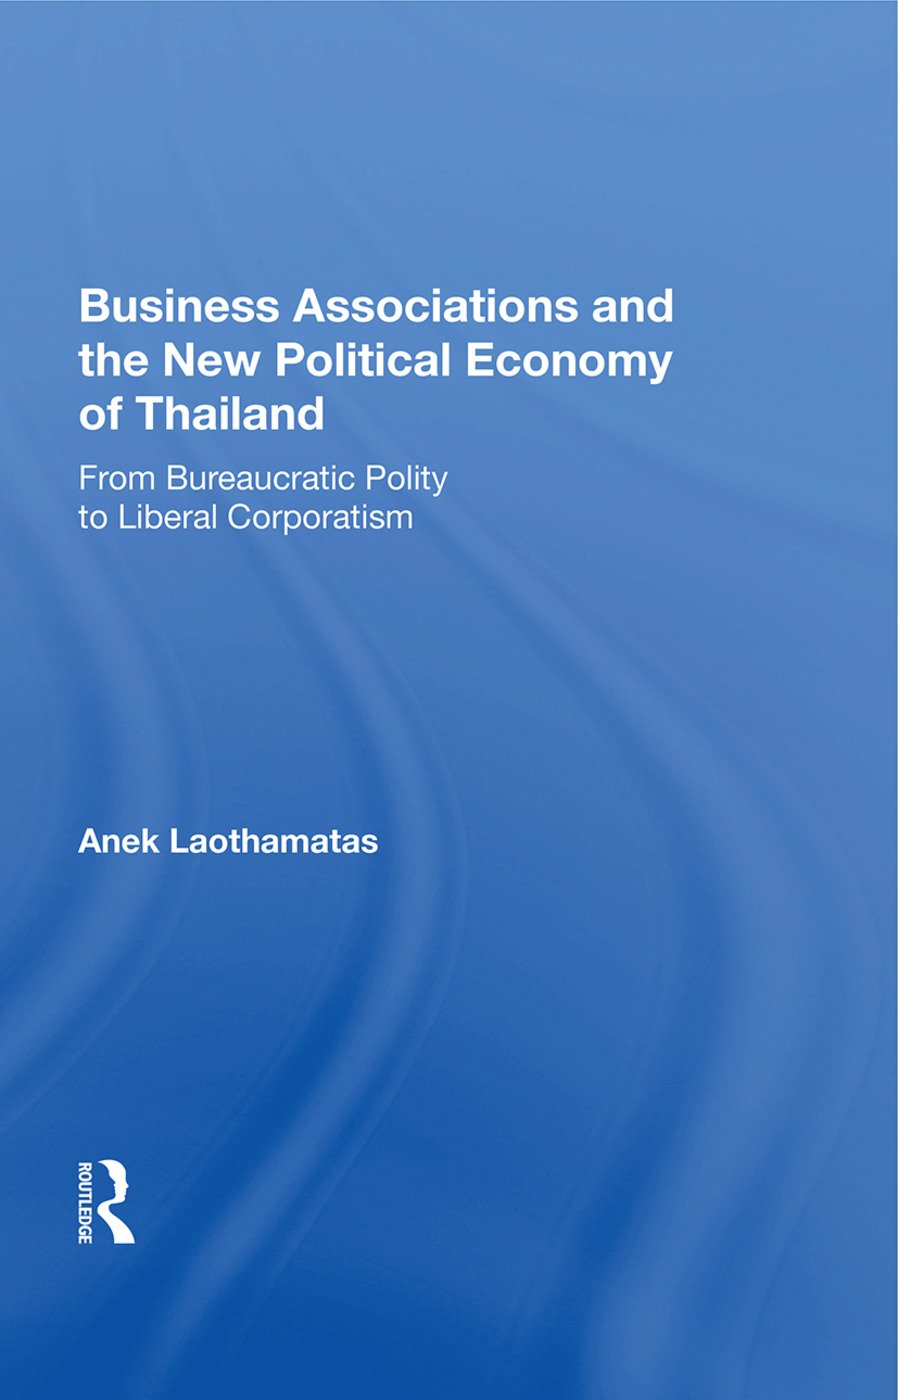 Business Associations and the New Political Economy of Thailand: From Bureaucratic Polity to Liberal Corporatism book cover